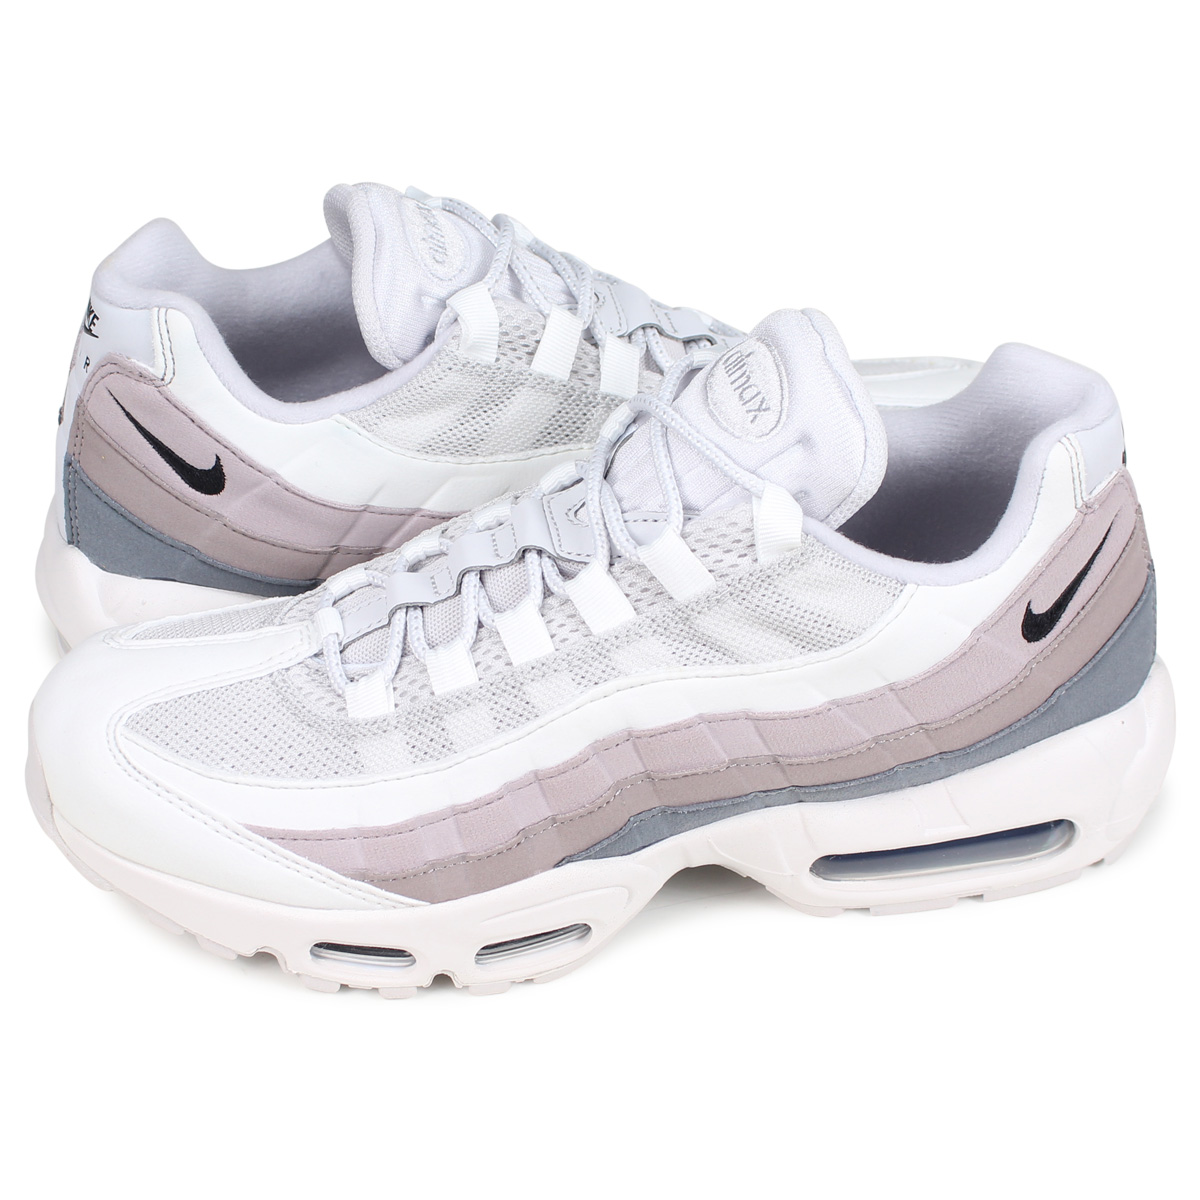 Nike NIKE Air Max 95 sneakers men gap Dis WMNS AIR MAX 95 gray 307,960 022 [194]